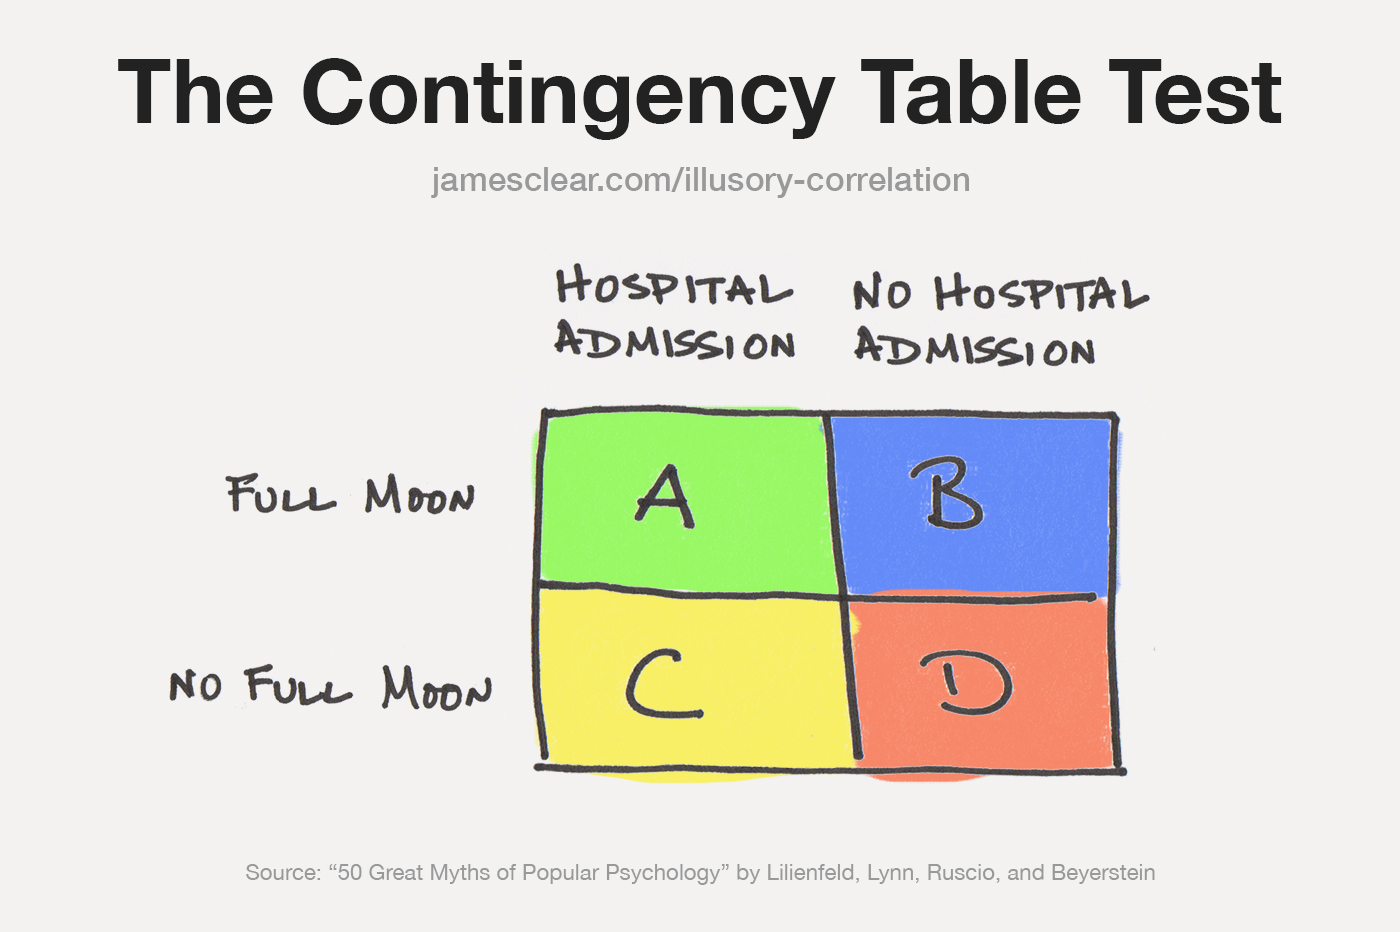 Full Moon Myth contingency table